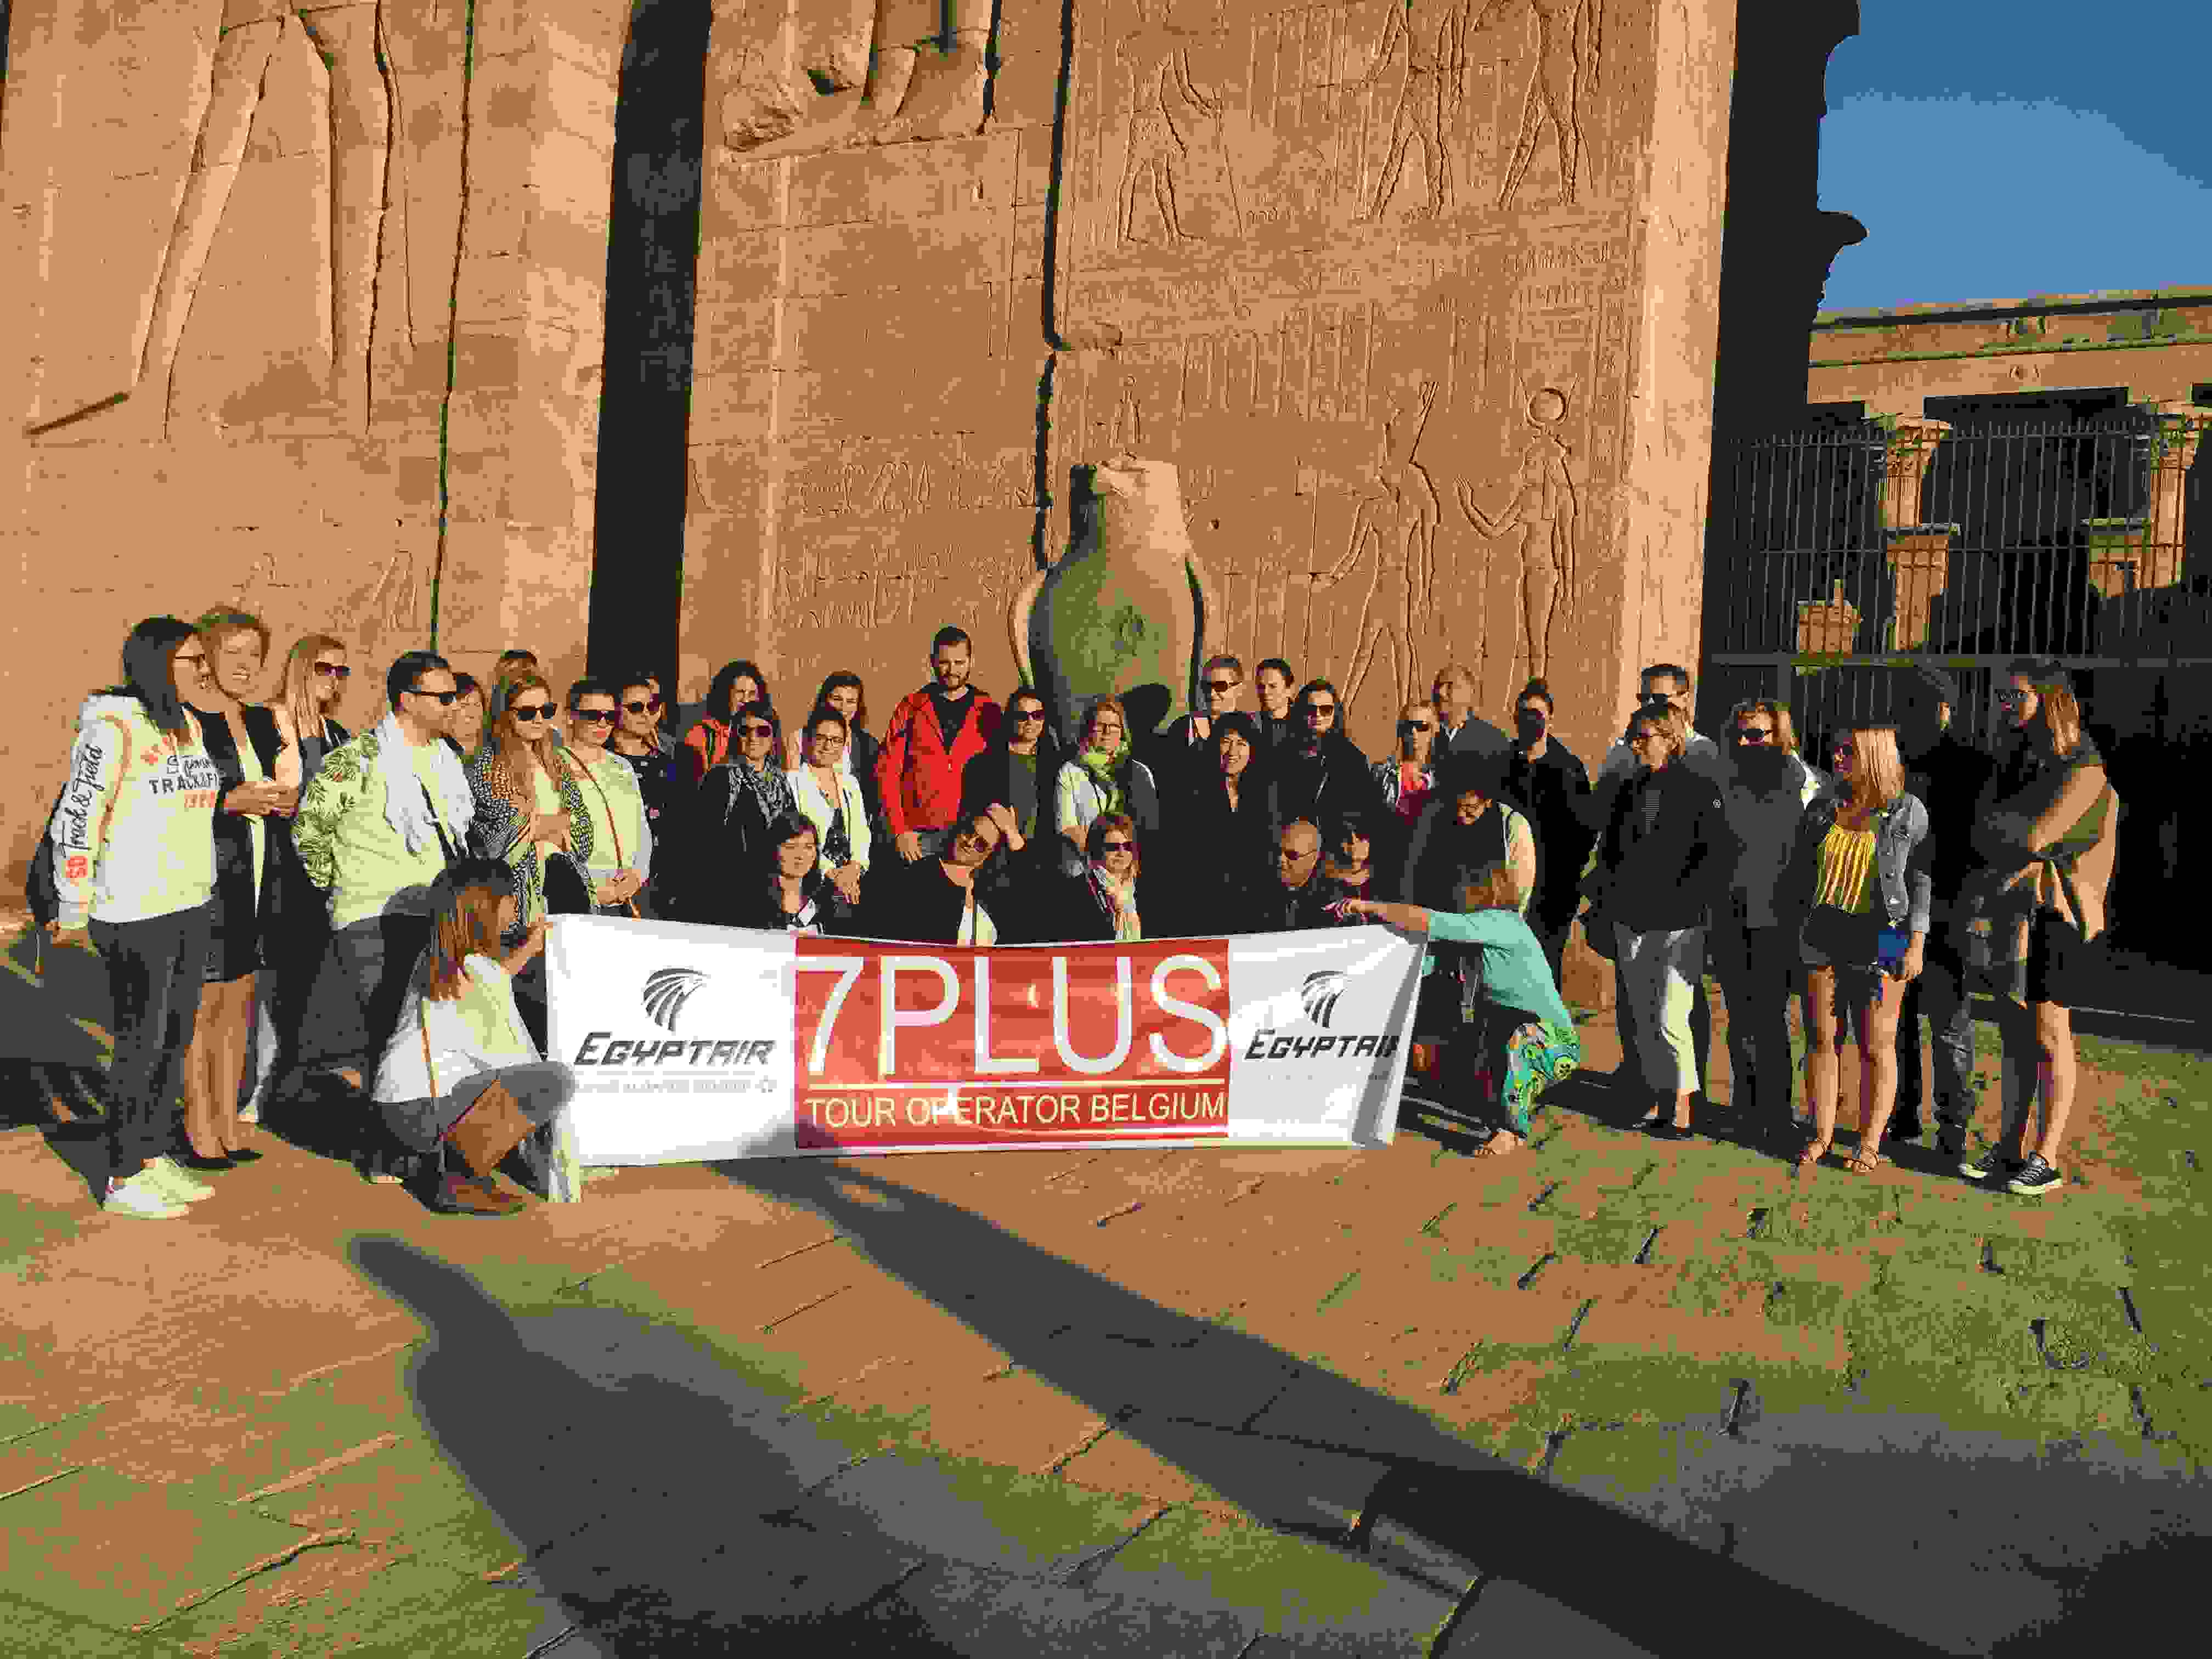 Eductour Egypte